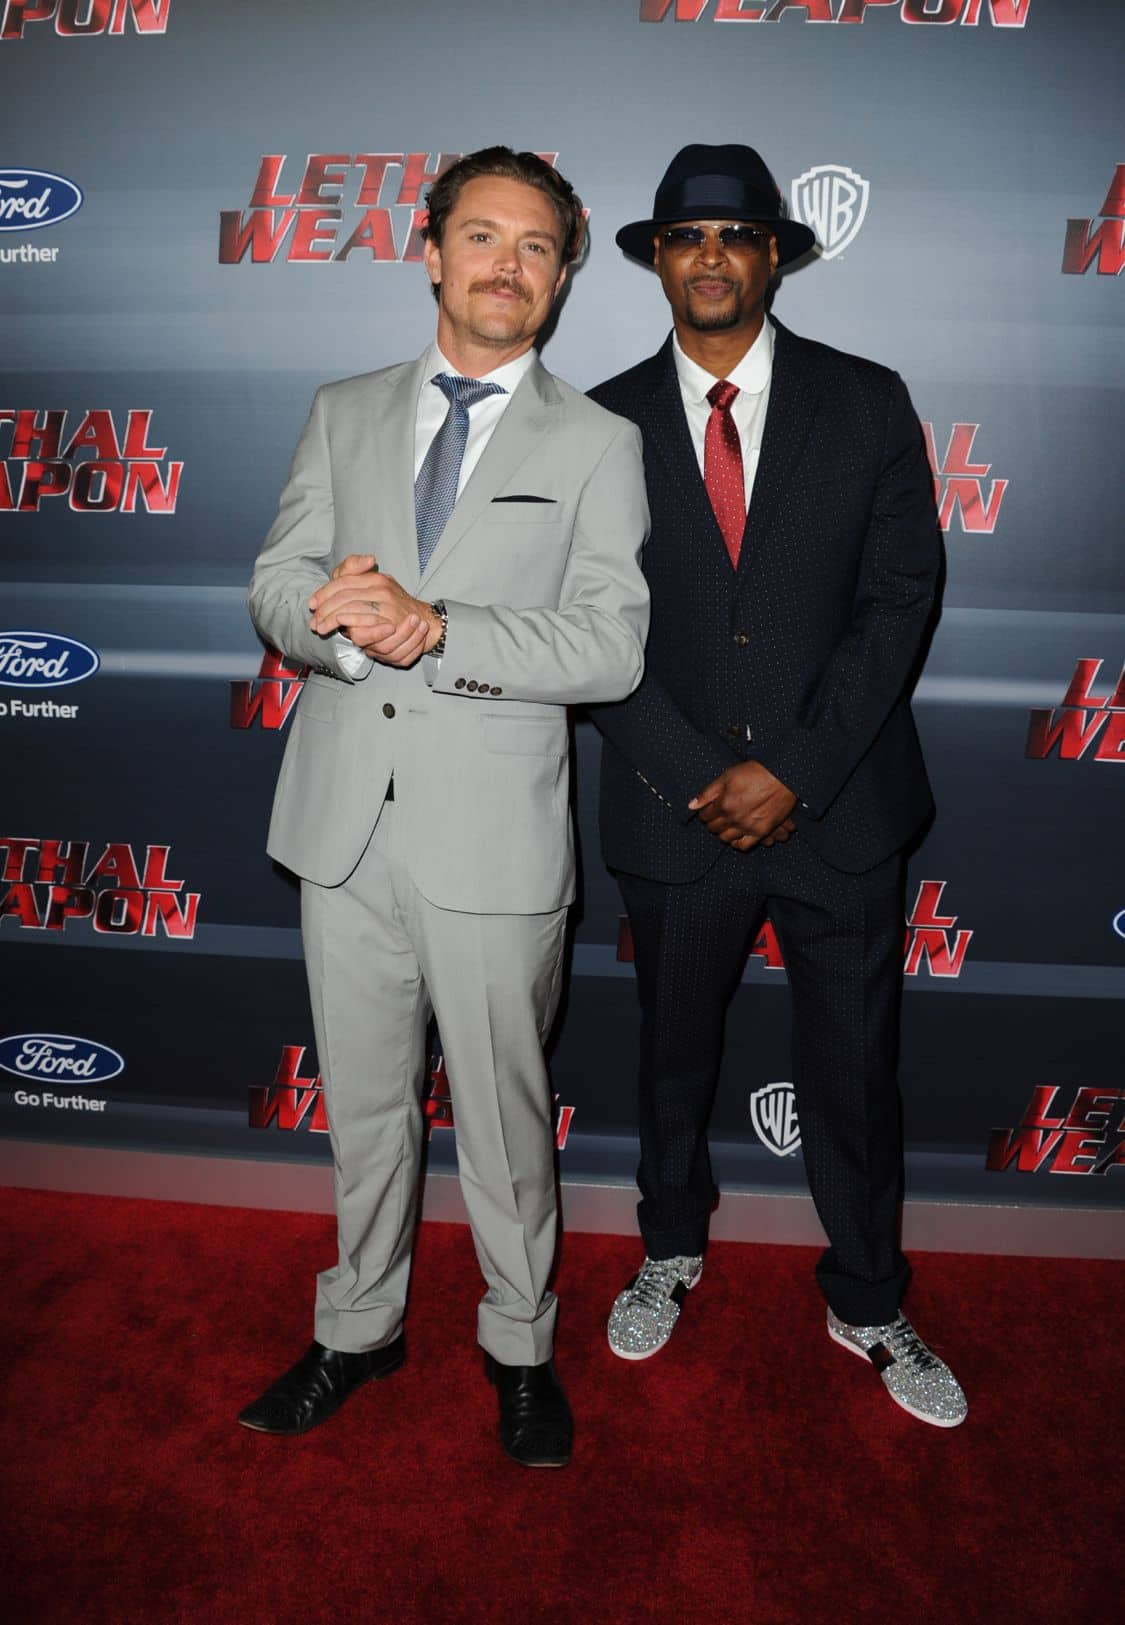 LETHAL WEAPON: Clayne Crawford and Damon Wayans celebrate the LETHAL WEAPON premiere party at NeueHouse Hollywood on Monday, Sept. 12, in Los Angeles, CA, sponsored by Ford. LETHAL WEAPON premieres Wednesday, Sept. 21 (8:00-9:00 PM ET/PT) on FOX. ©2016 Fox Broadcasting Co. CR: Frank Micelotta/FOX